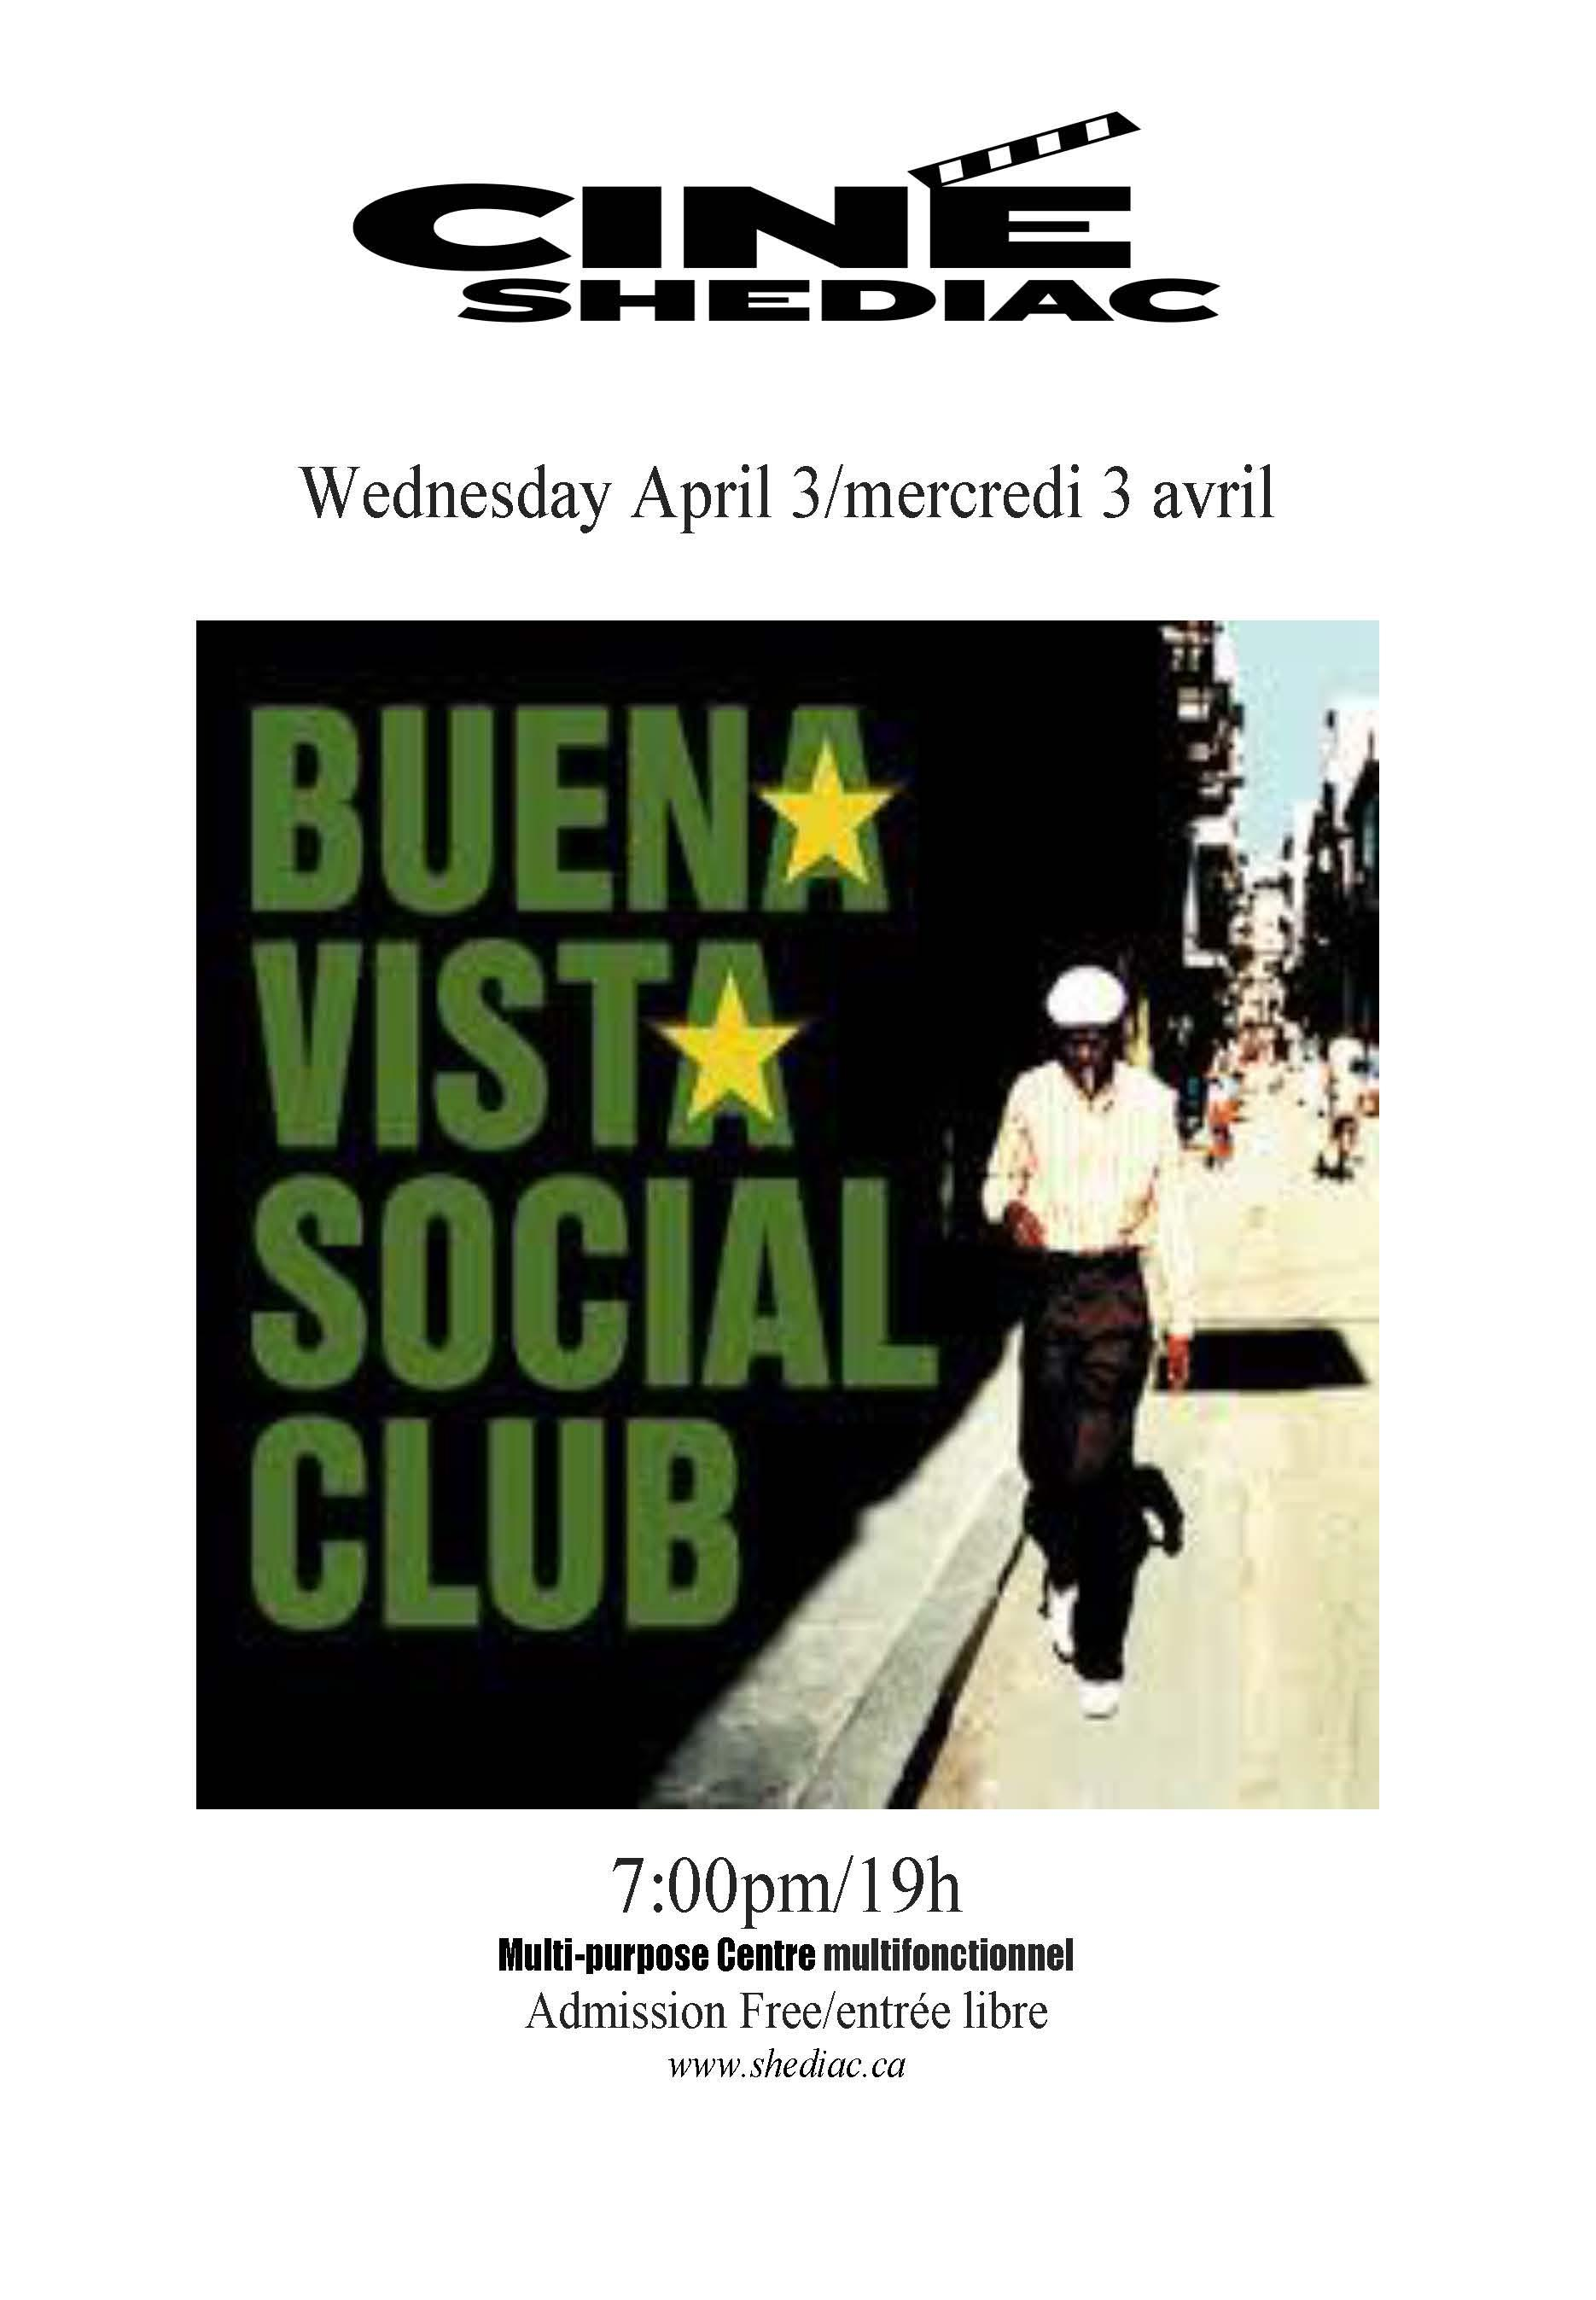 Buena Vista Social Club 3 avril